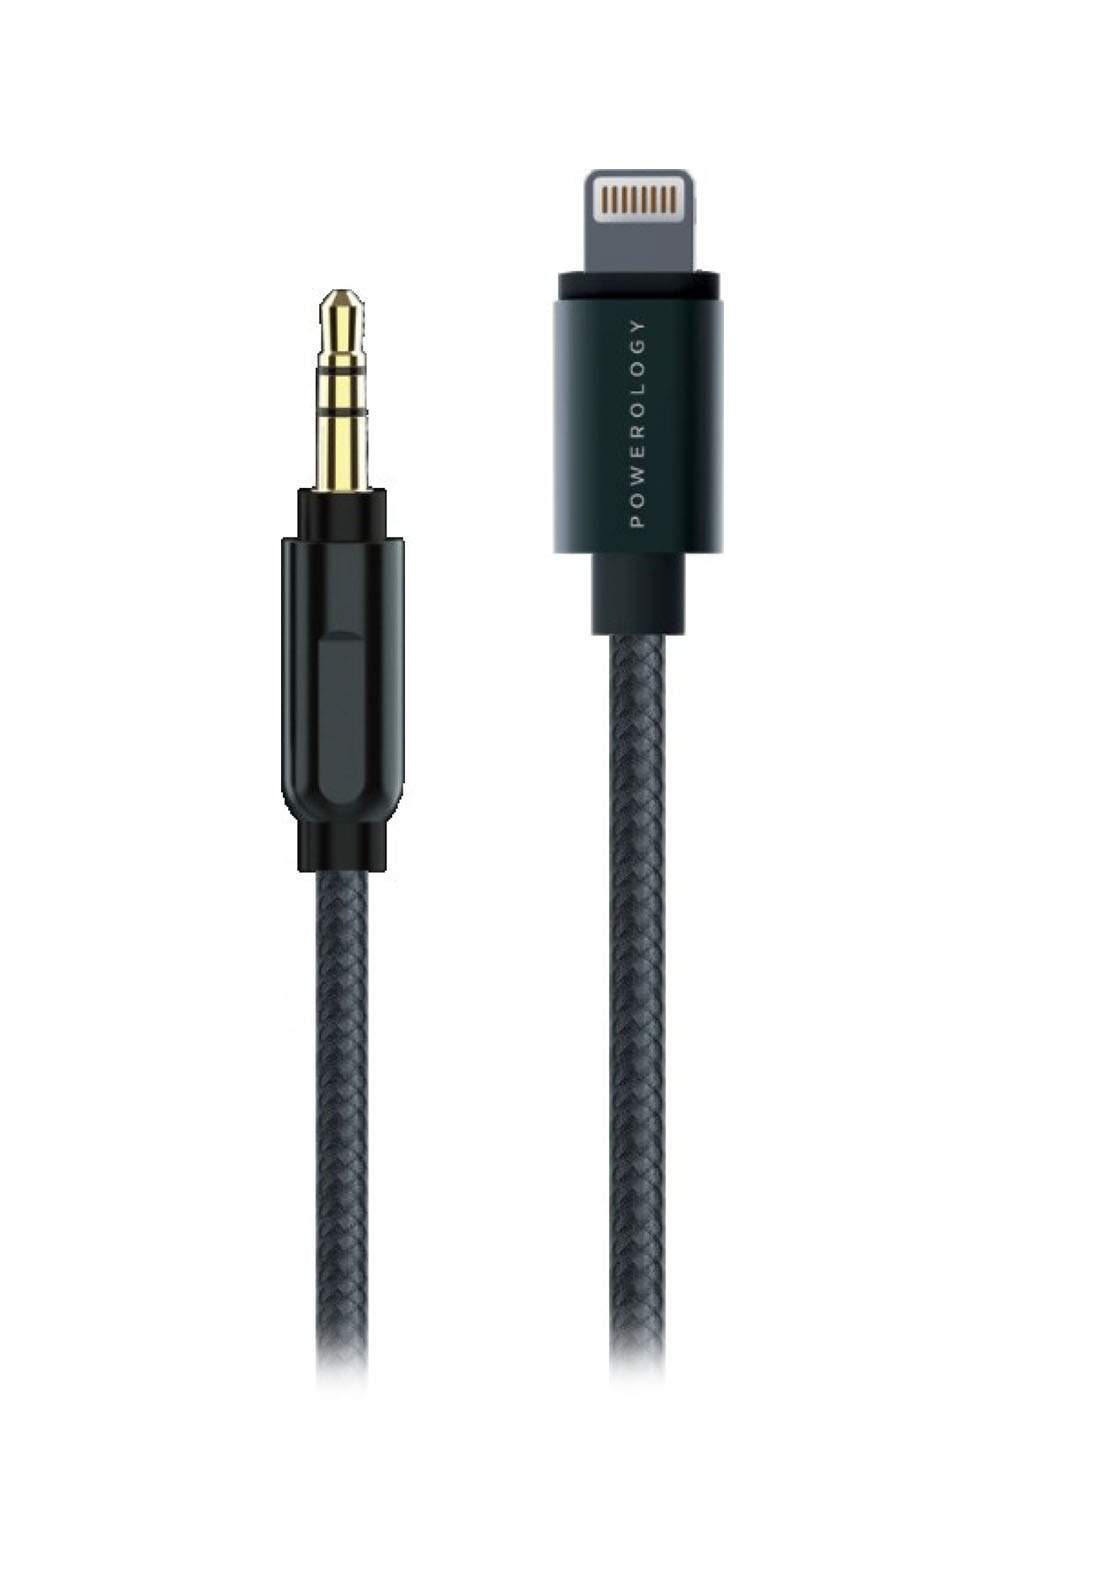 Powerology P12LAUGY Lightning to 3.5mm AUX Cable  - Black كابل